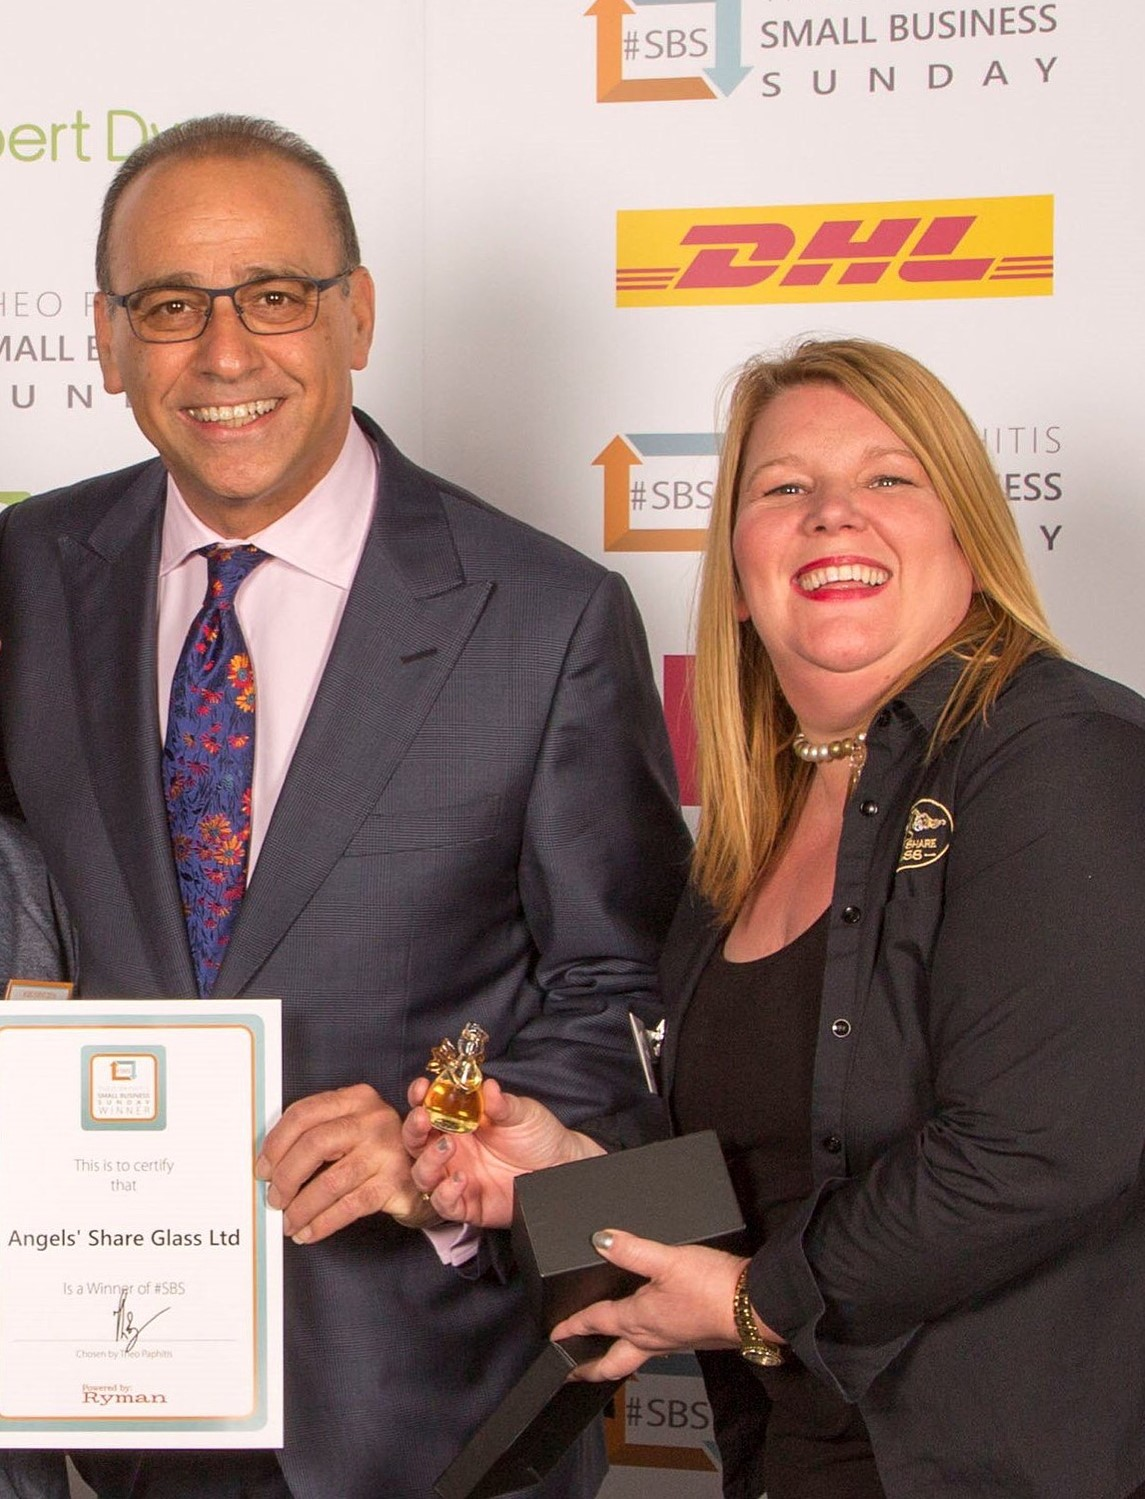 Karen Somerville with Theo Paphitis